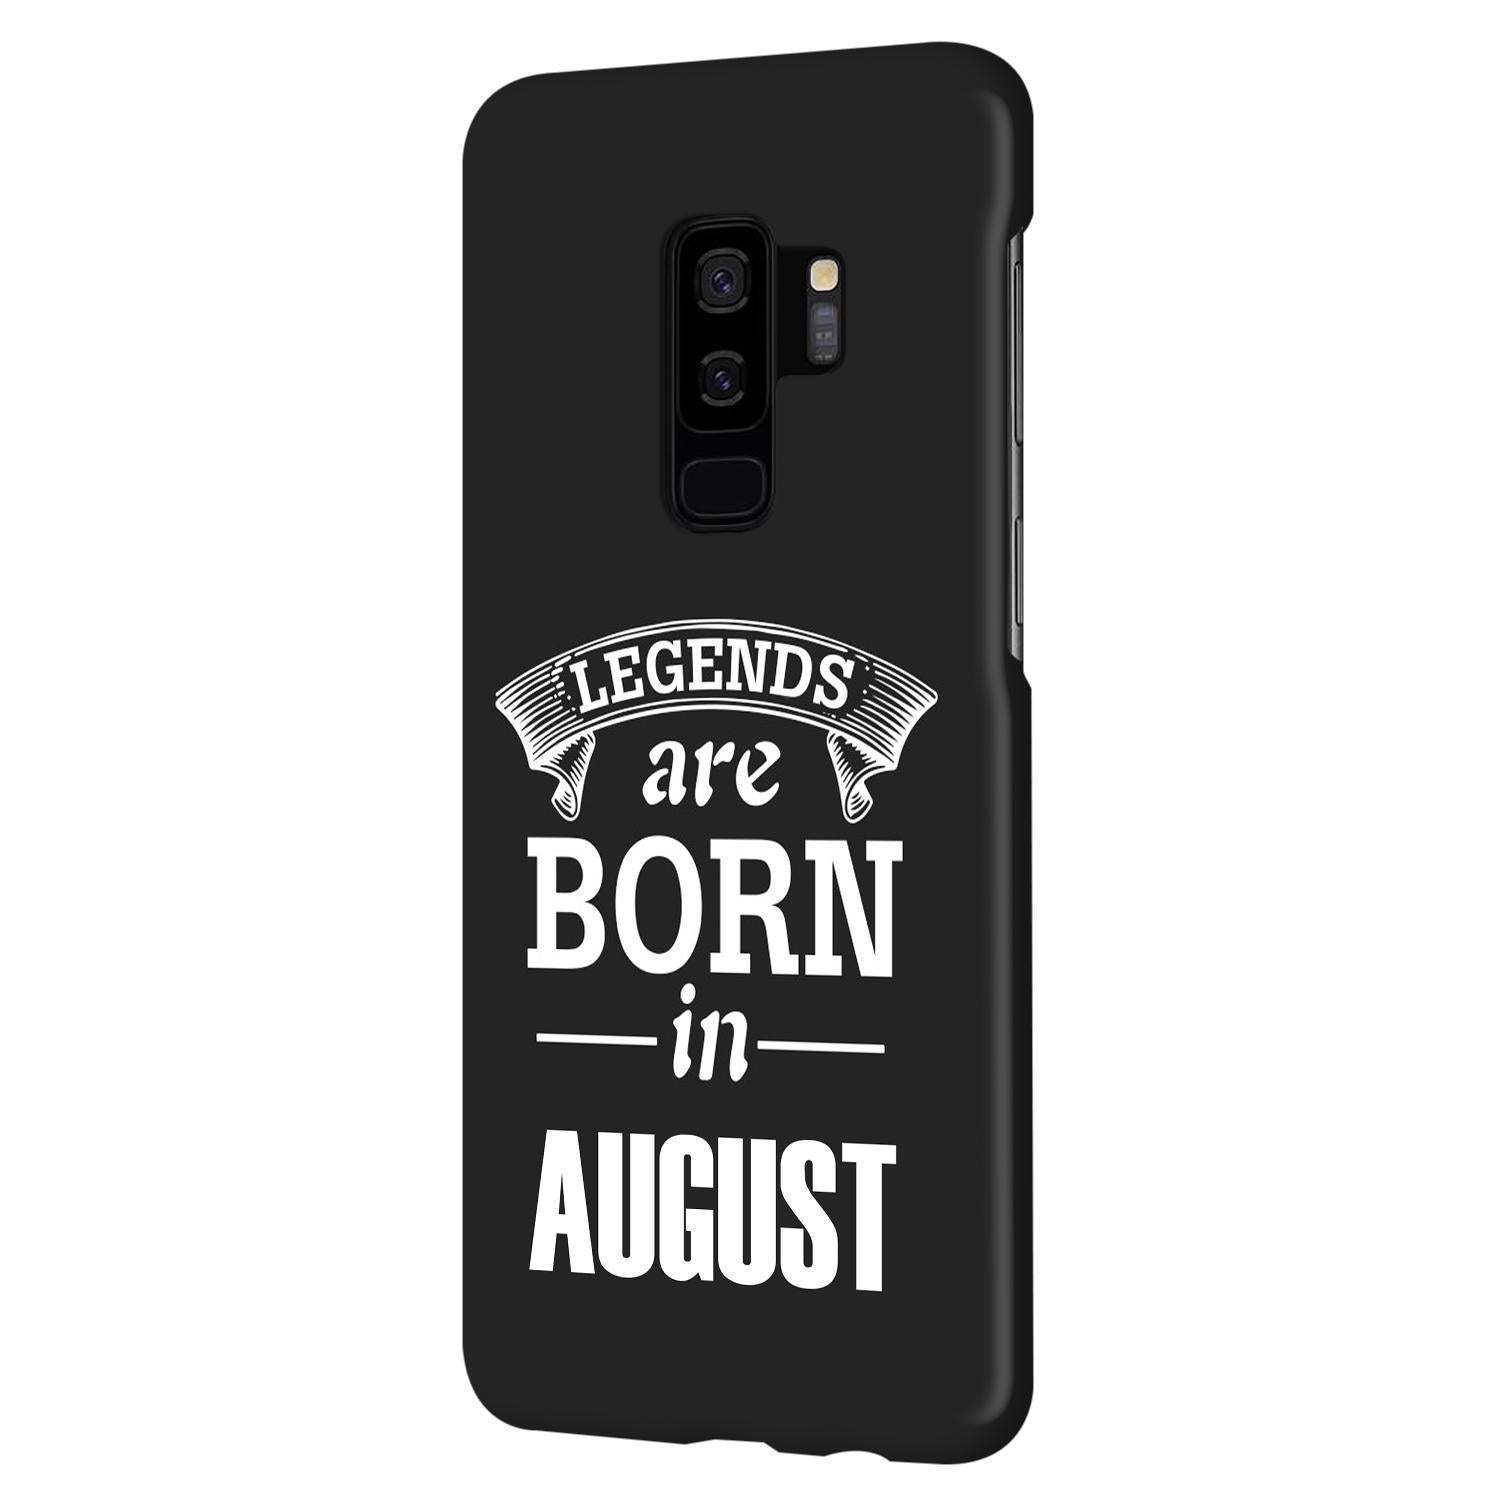 Legends August Samsung Galaxy S9 Plus Mobile Cover Case